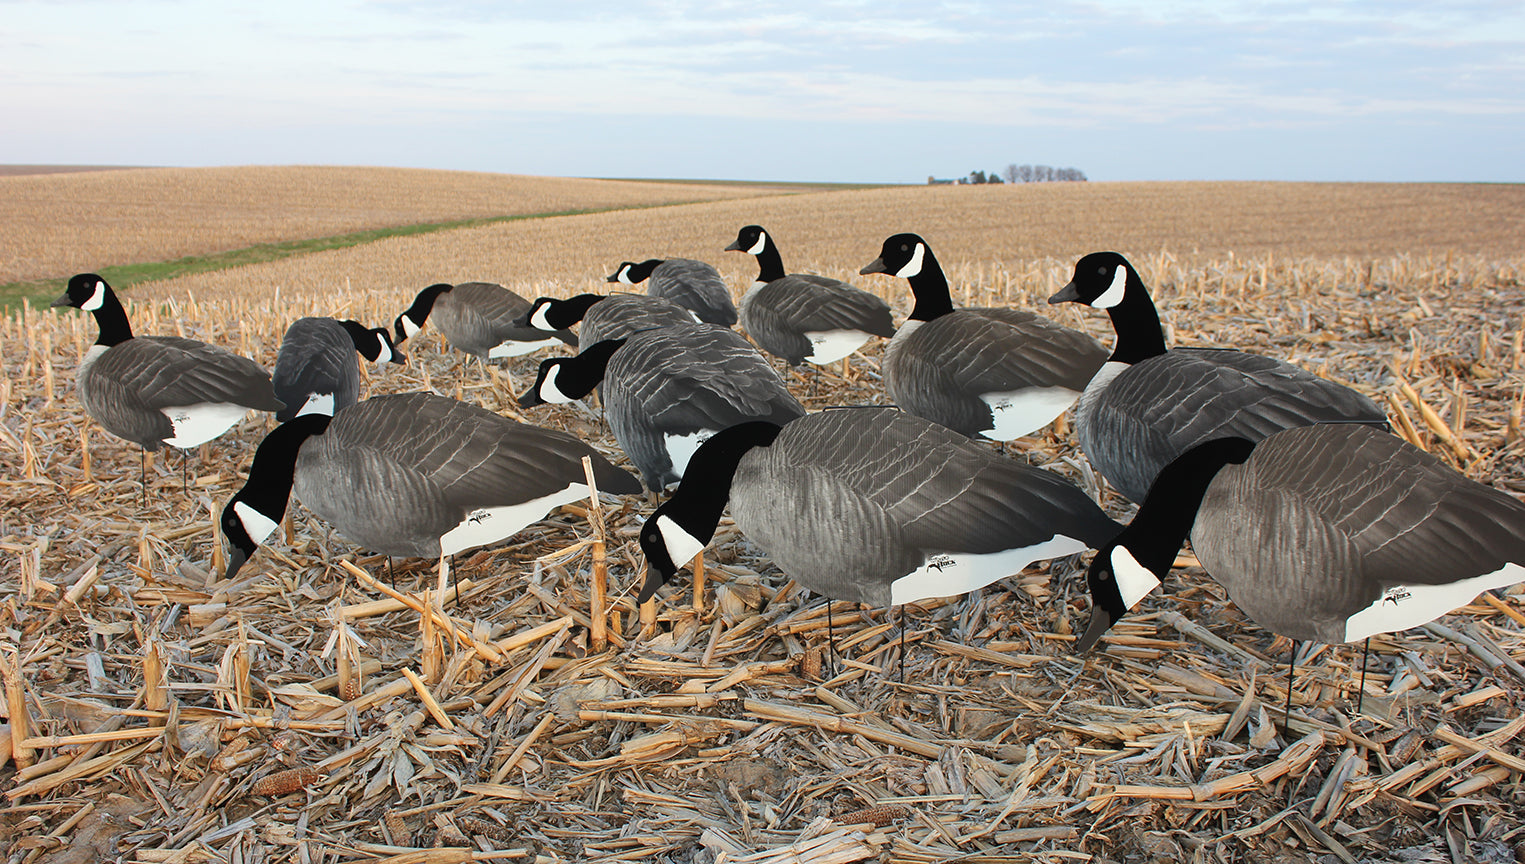 Flocked Head Silhouettes – White Rock Decoys